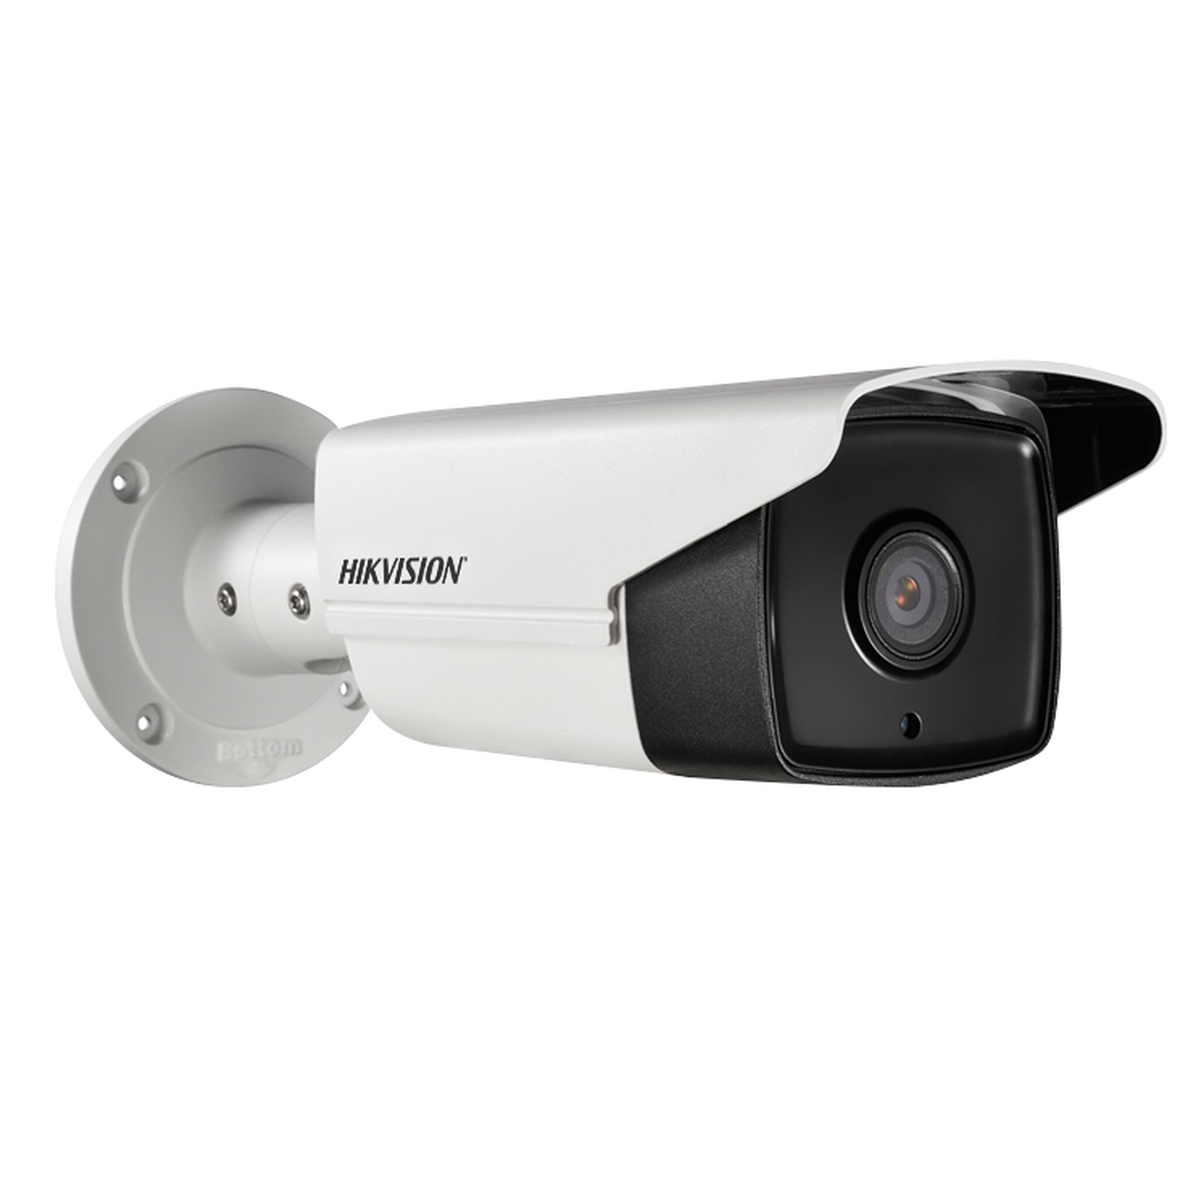 Hikvision 4 MP EXIR Bullet Network Camera | DS-2CD2T42WD-I5